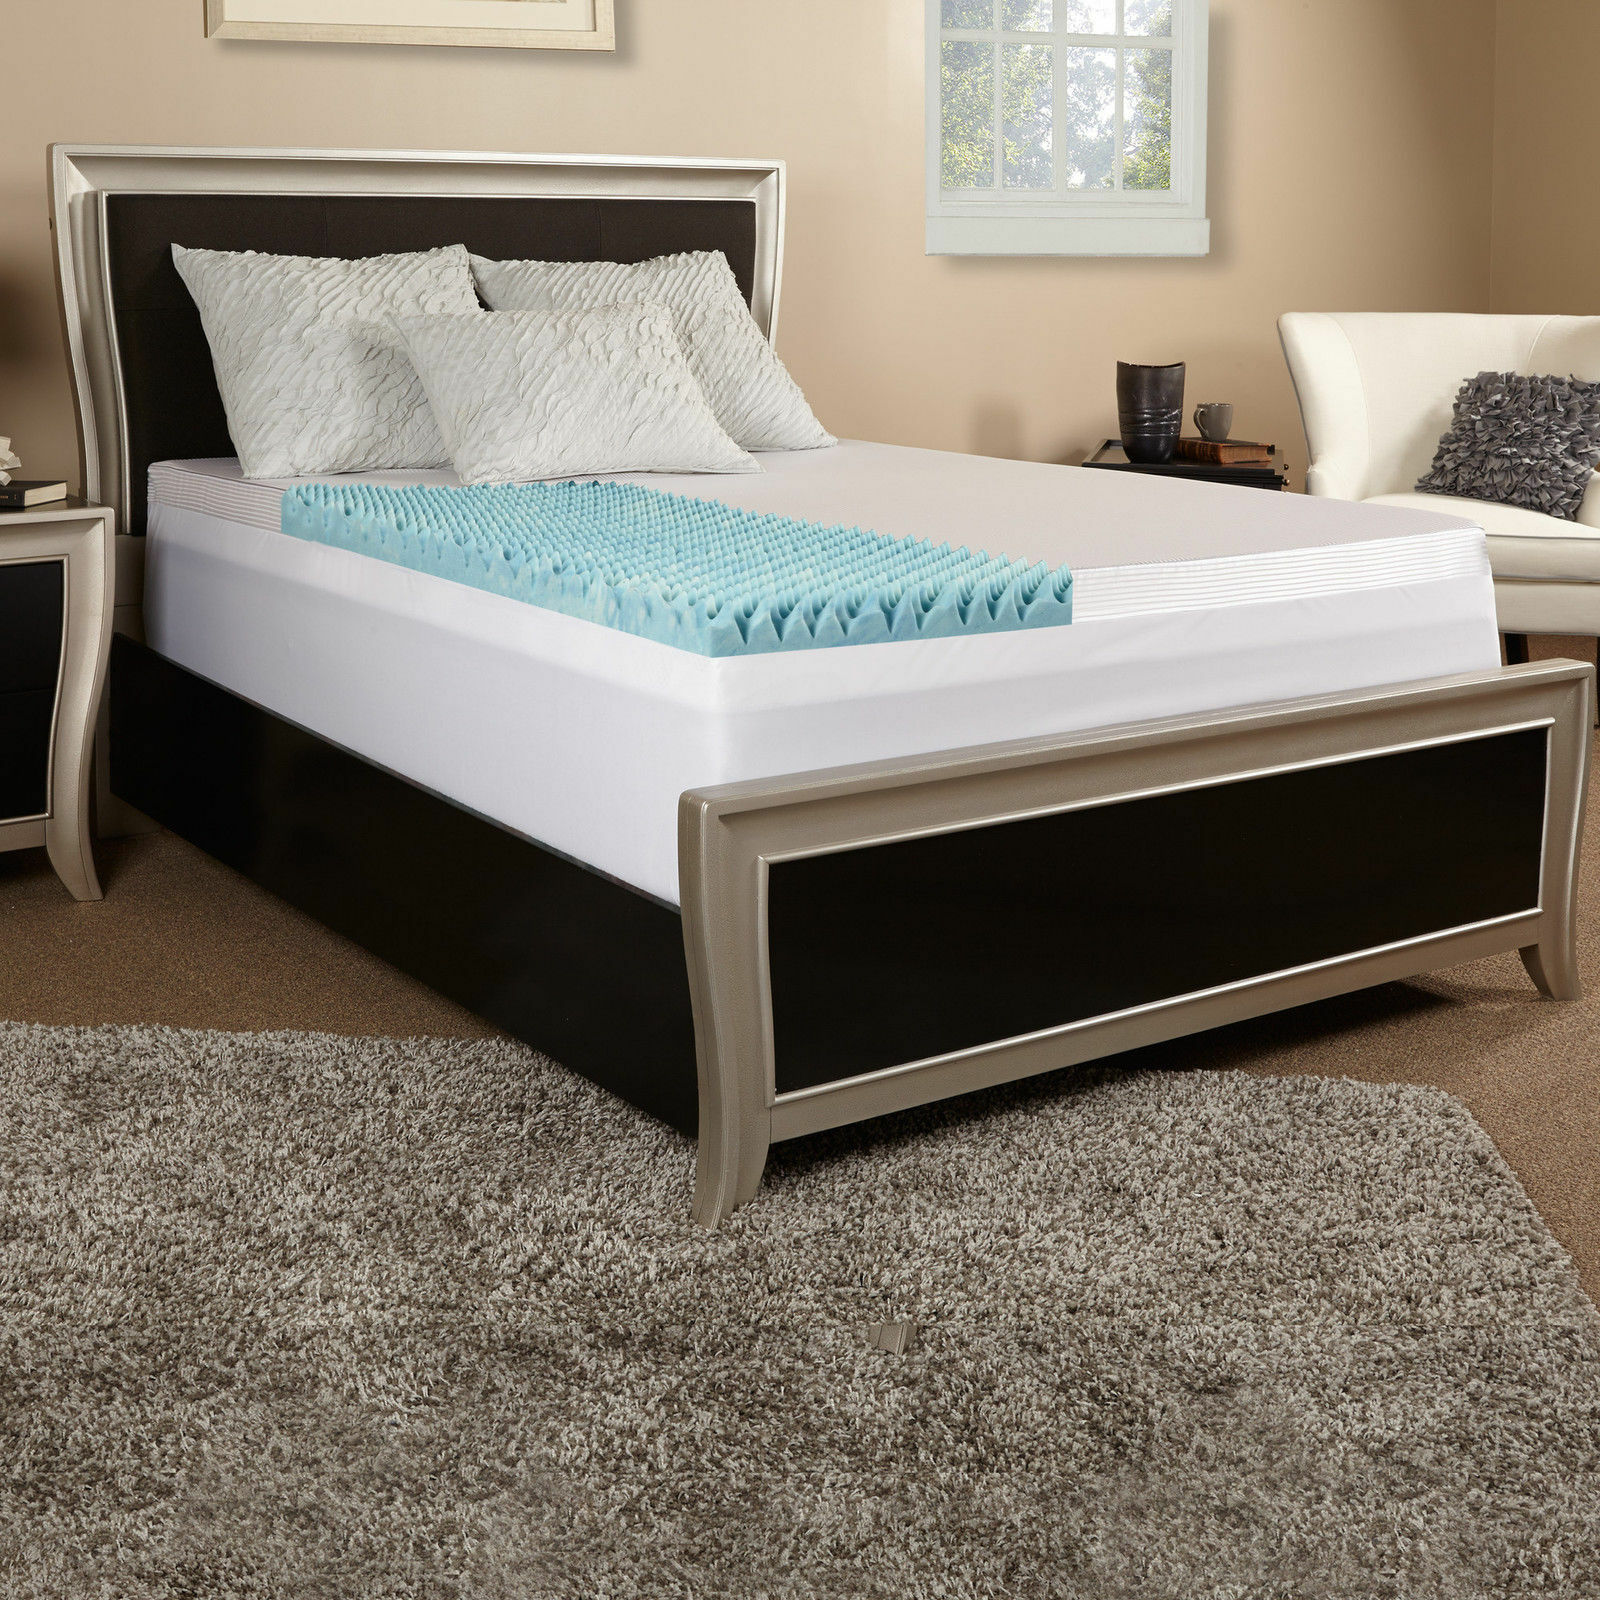 Serta 3 inch memory foam mattress topper - Memory Foam Solutions Topper